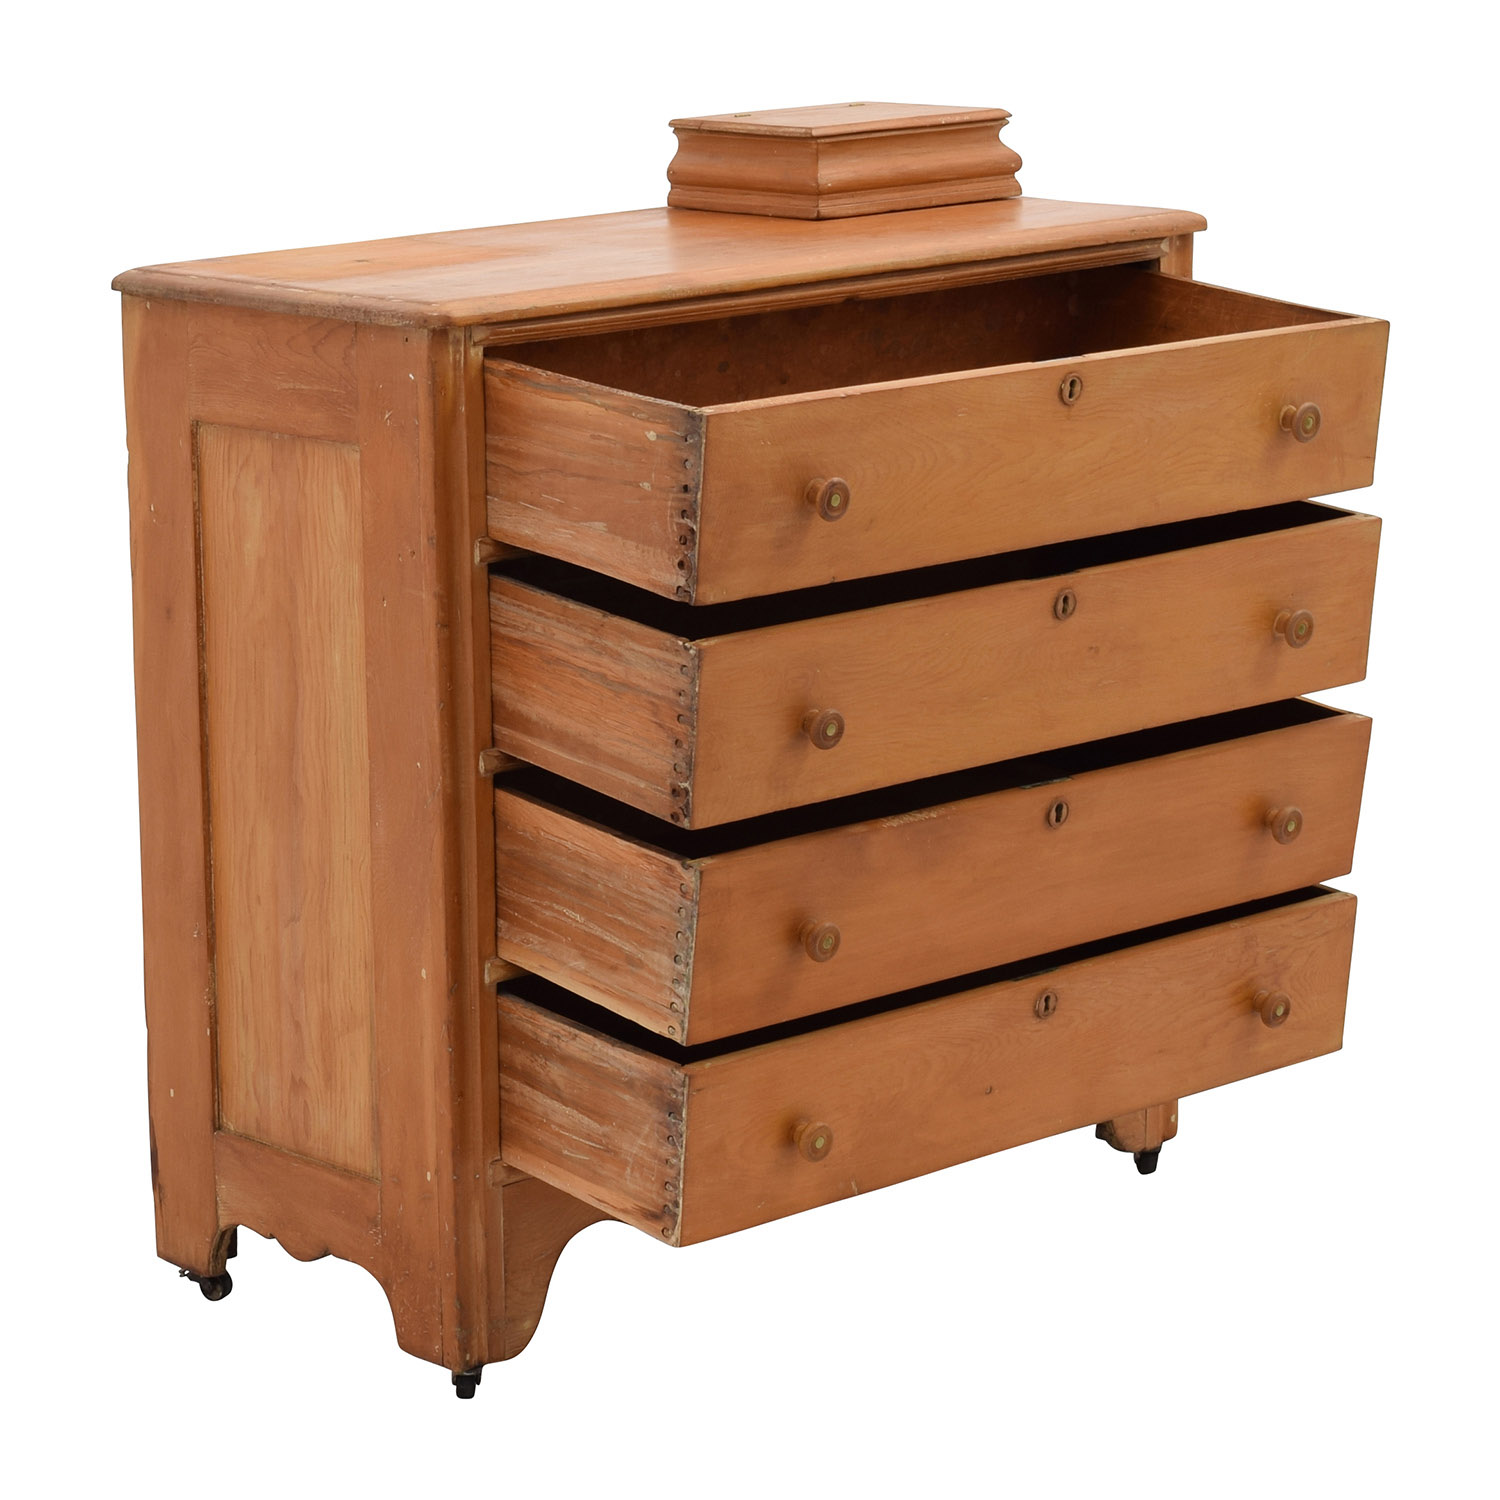 ... Antique Dovetailed Four Drawer Dresser With Jewelry Box / Storage ...